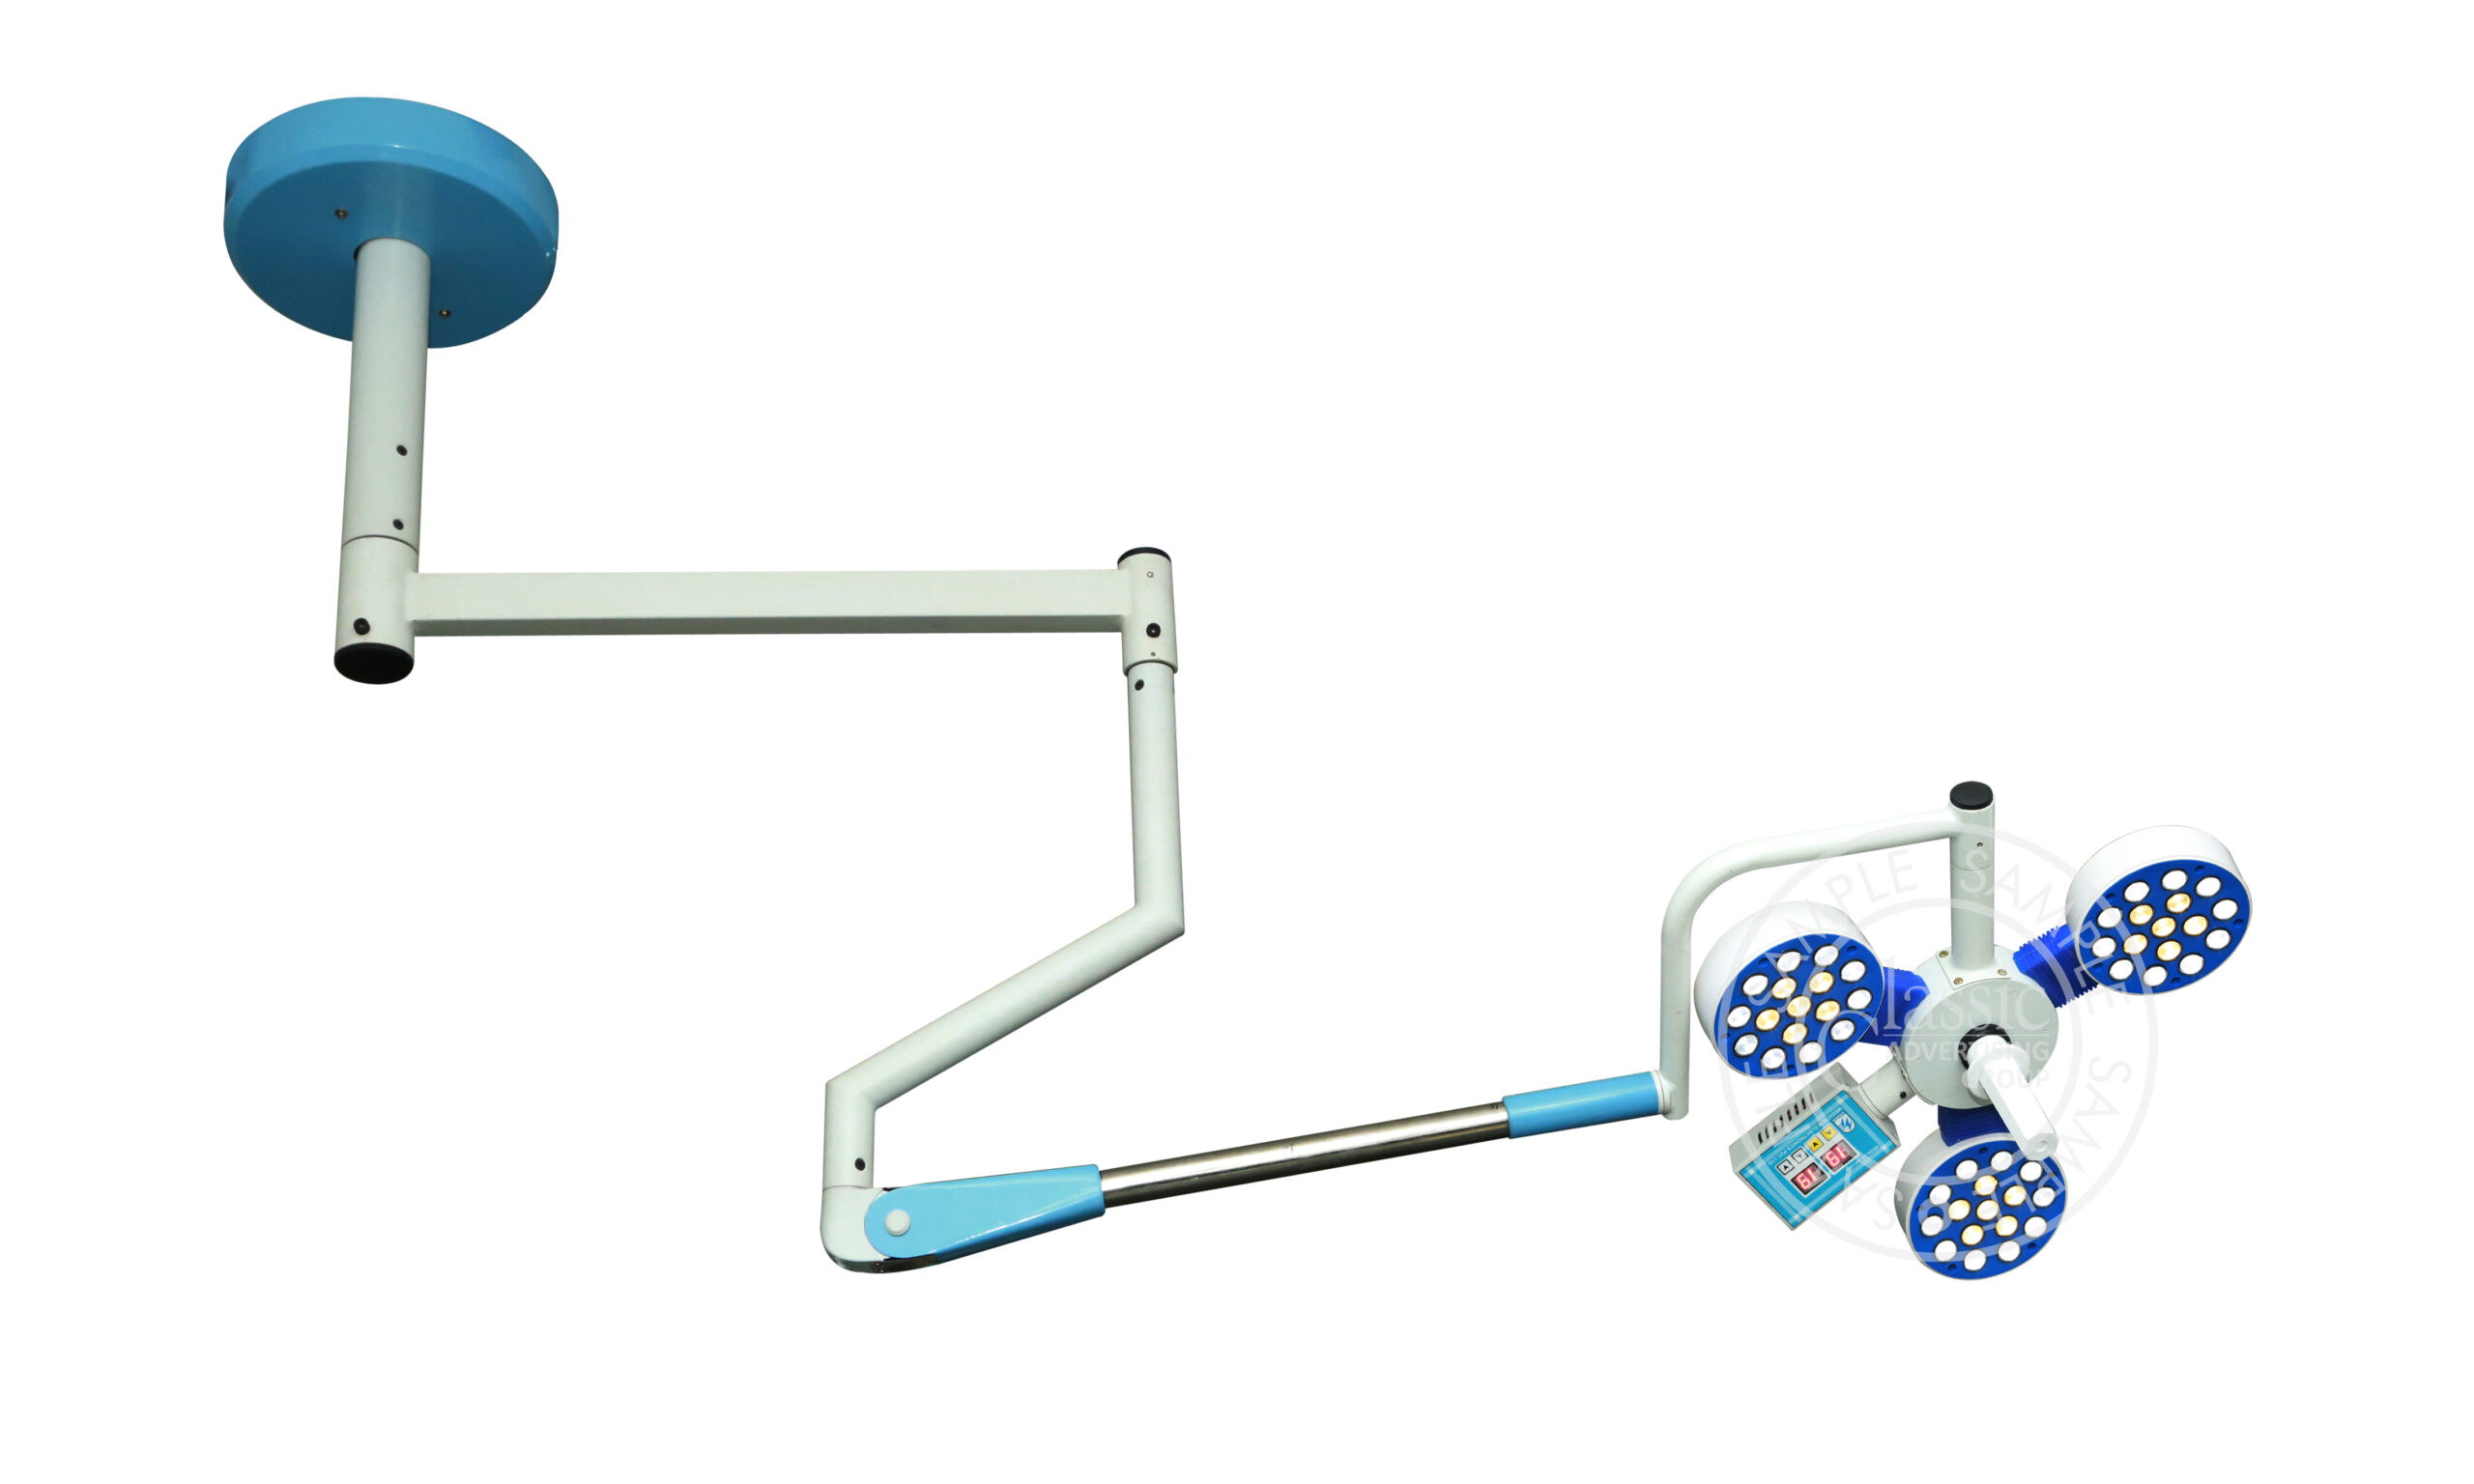 Manufacturer of Examination LED O.T. Lights - Medilap Operation Theater LED Light, Medical LED OT Lamp, OT LED Spot Light offered by MEDILAP, New Delhi, India